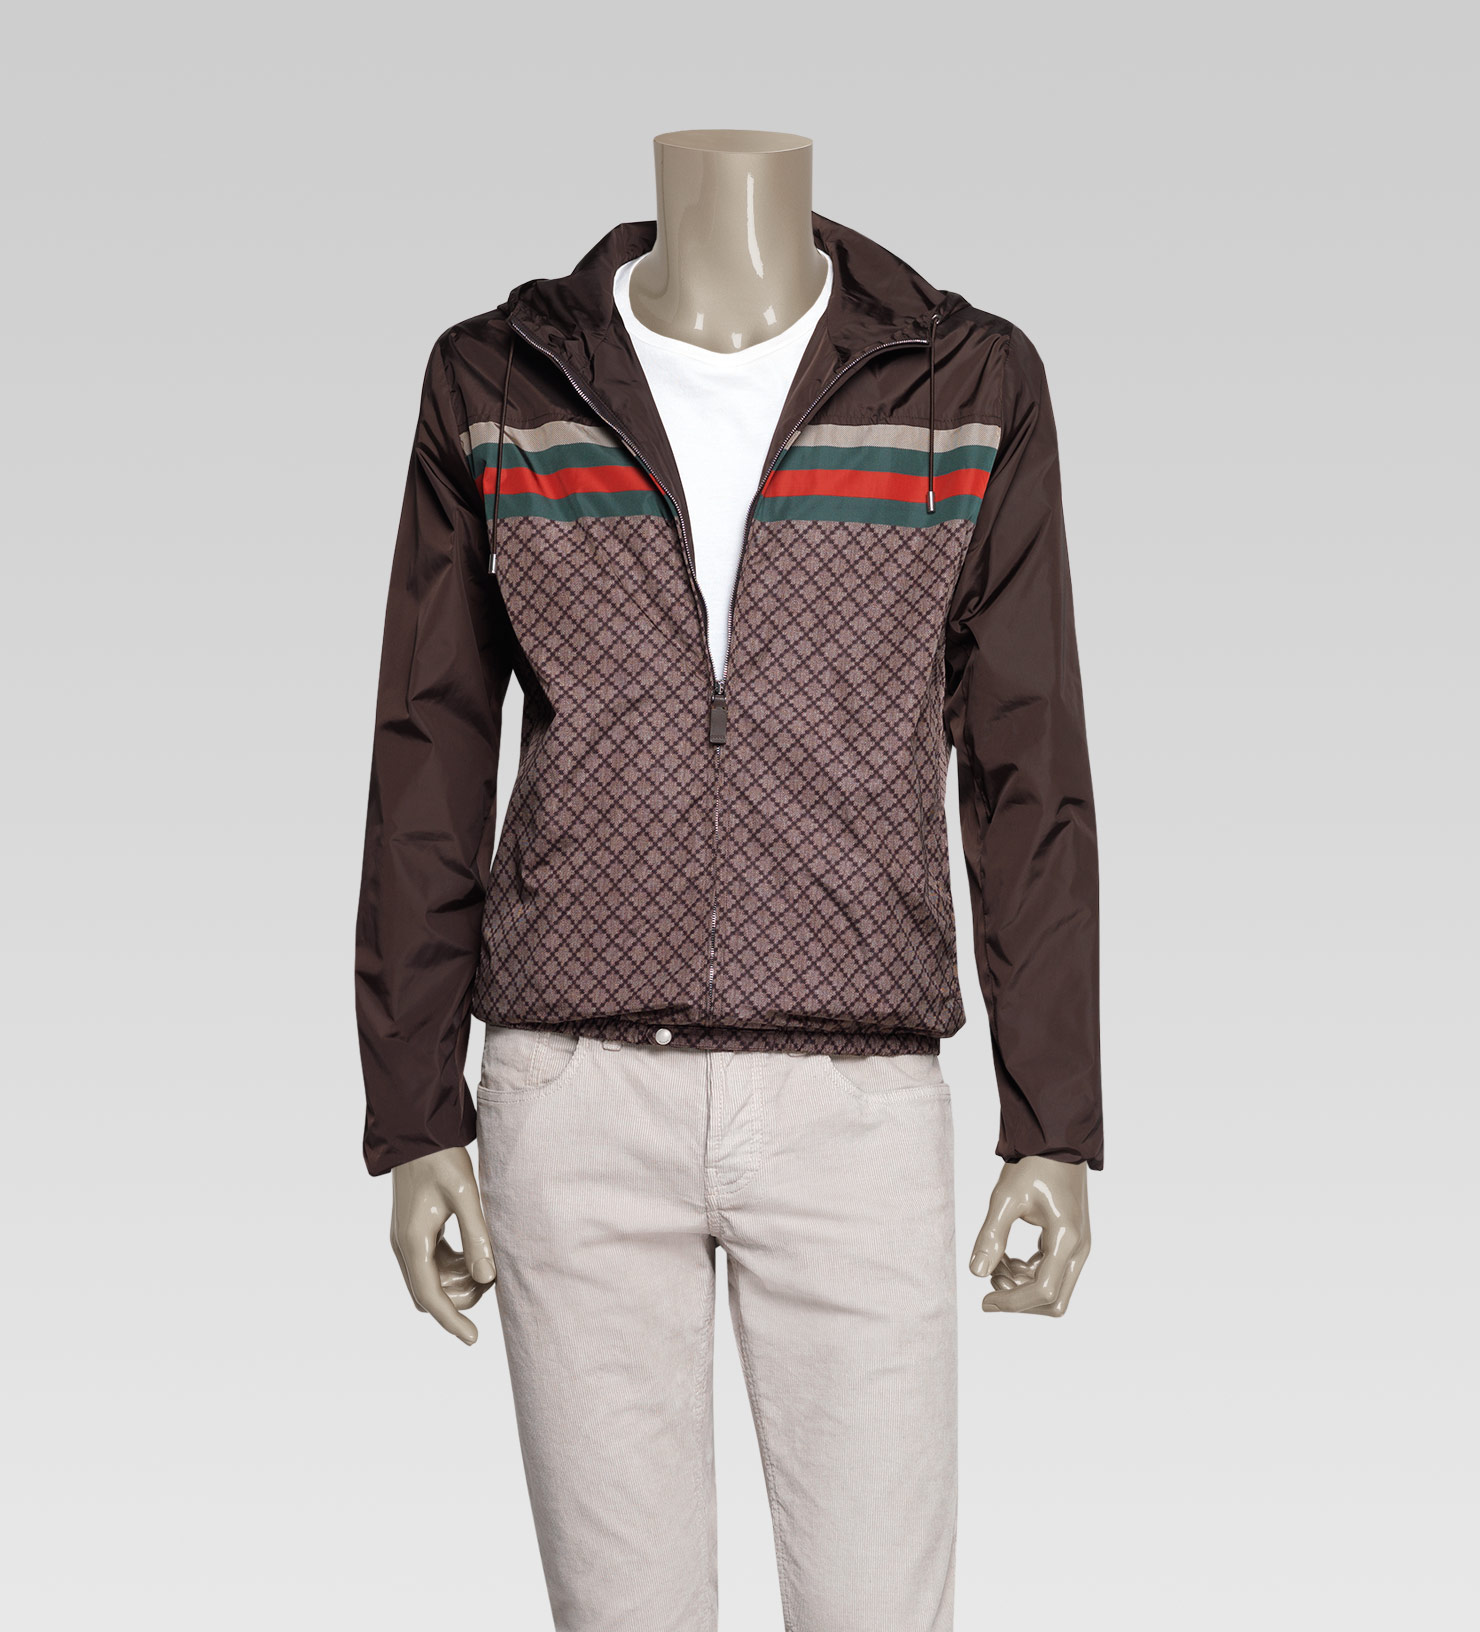 f34157a98 Gucci Iconic Kway Jacket in Brown for Men - Lyst